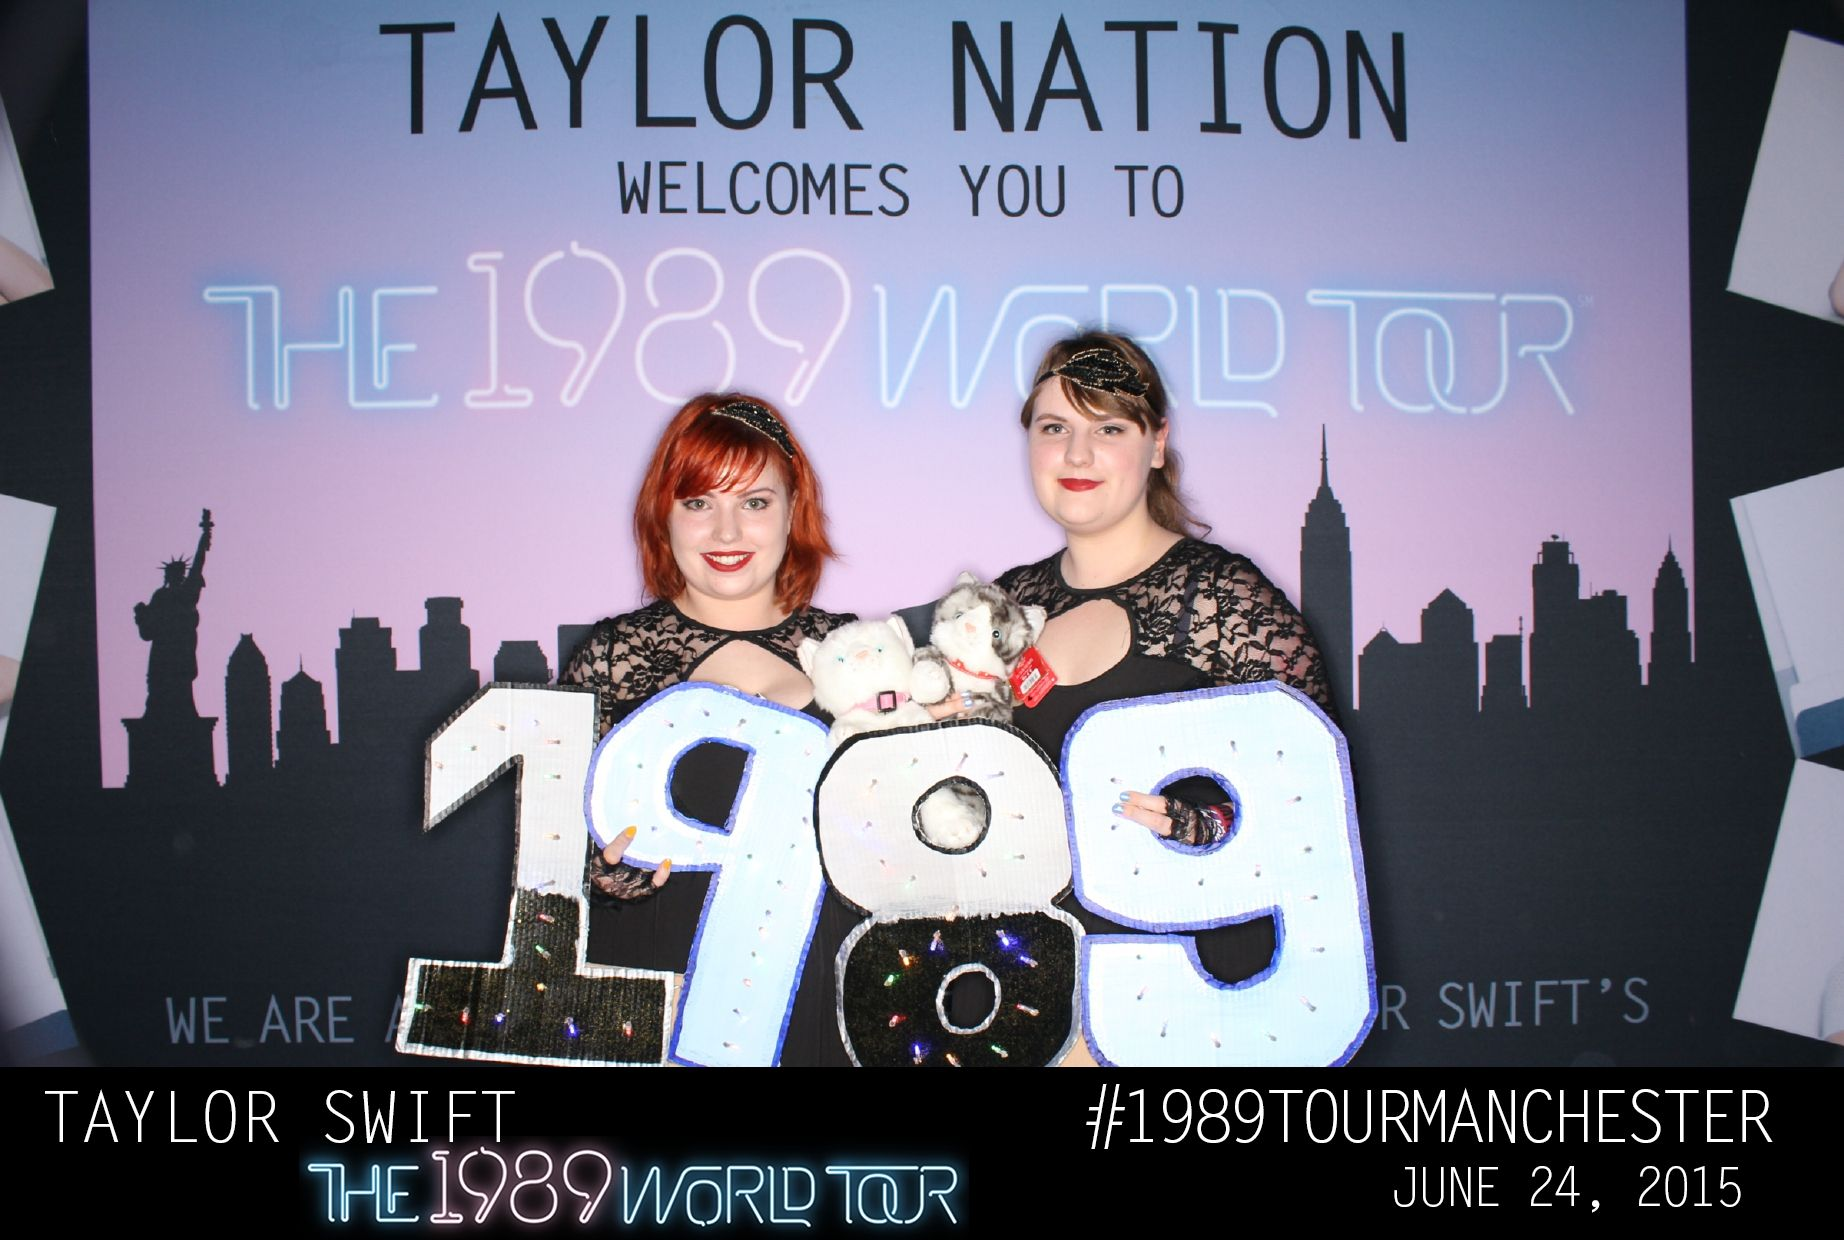 1989 Tour Manchester <3 @thisickbeat